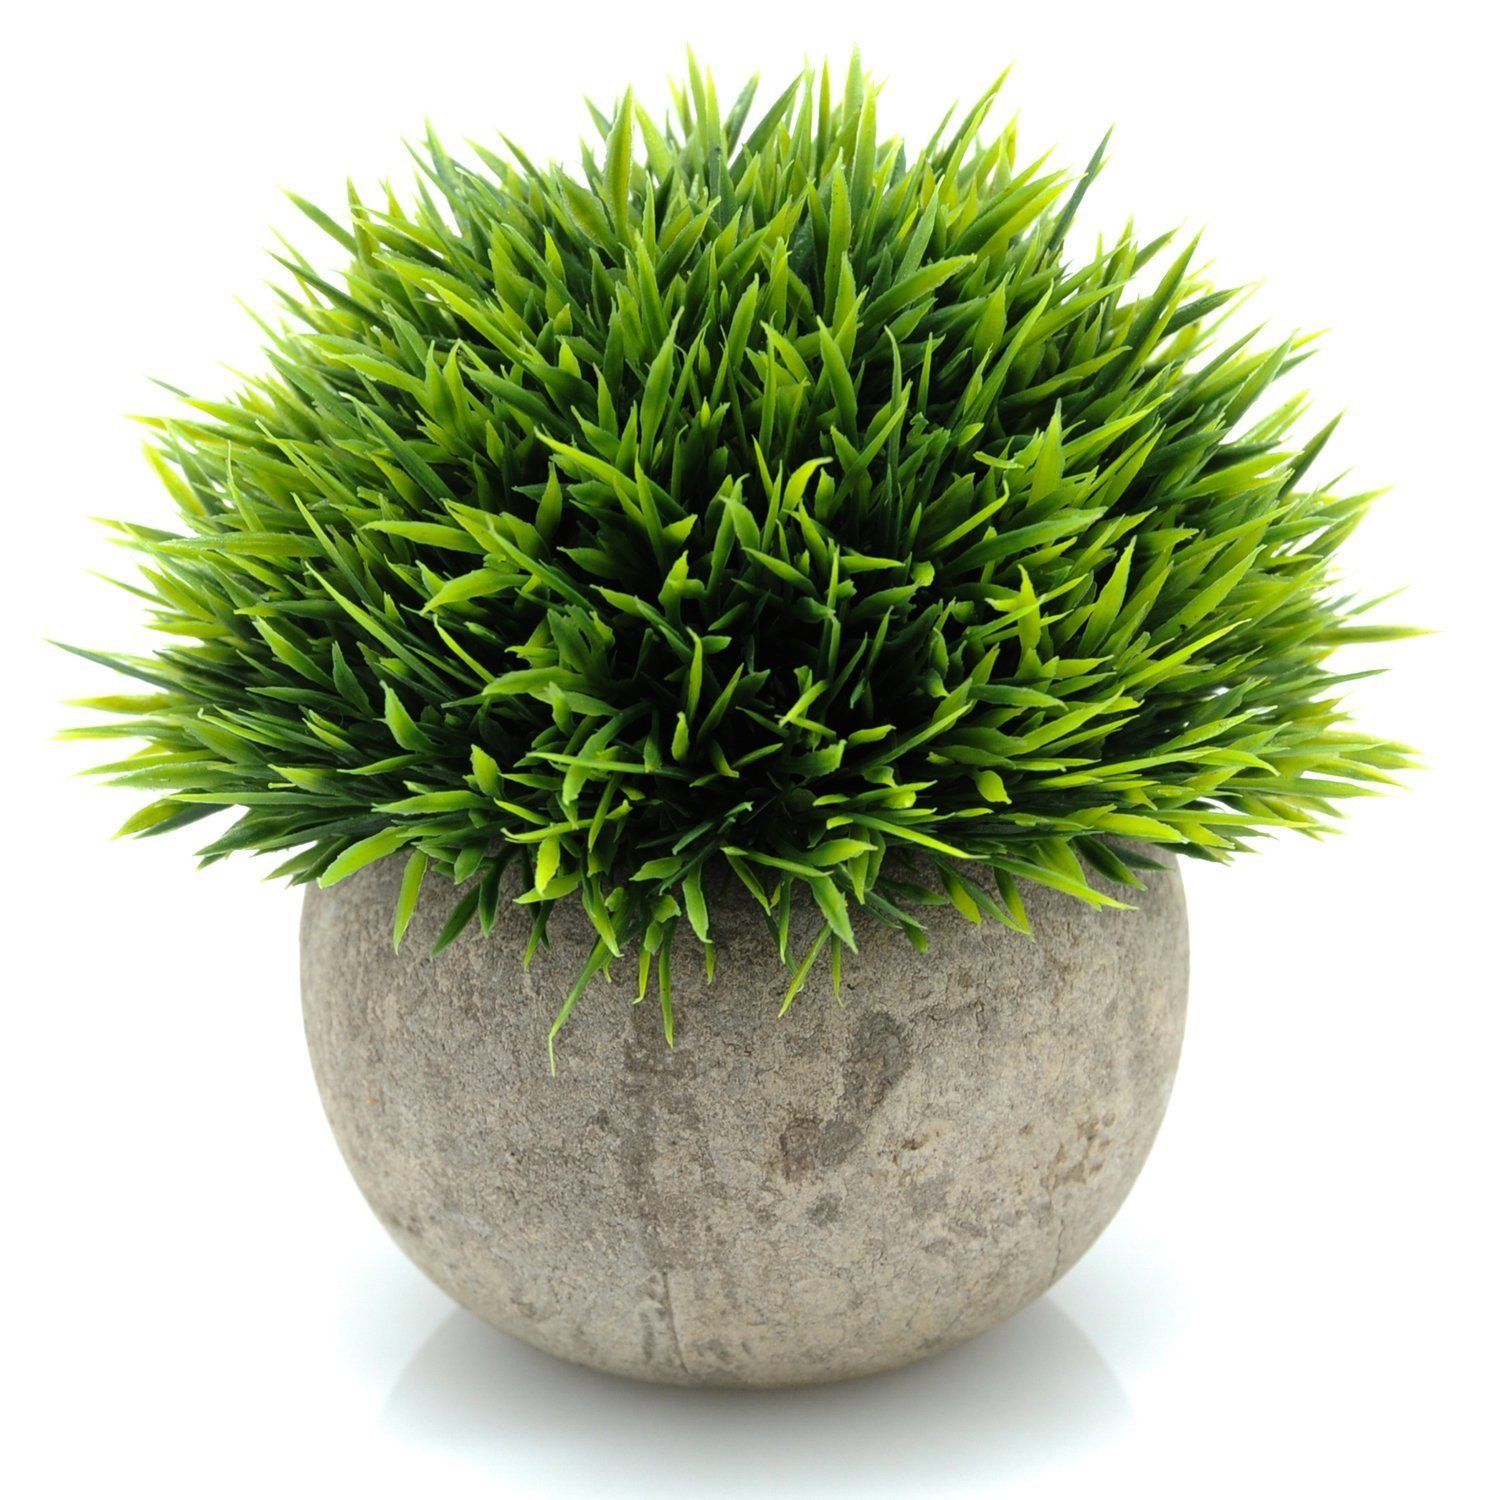 Artificial Potted Ornament Topiary Ball Shape Bonsai Fake Plant Vividly